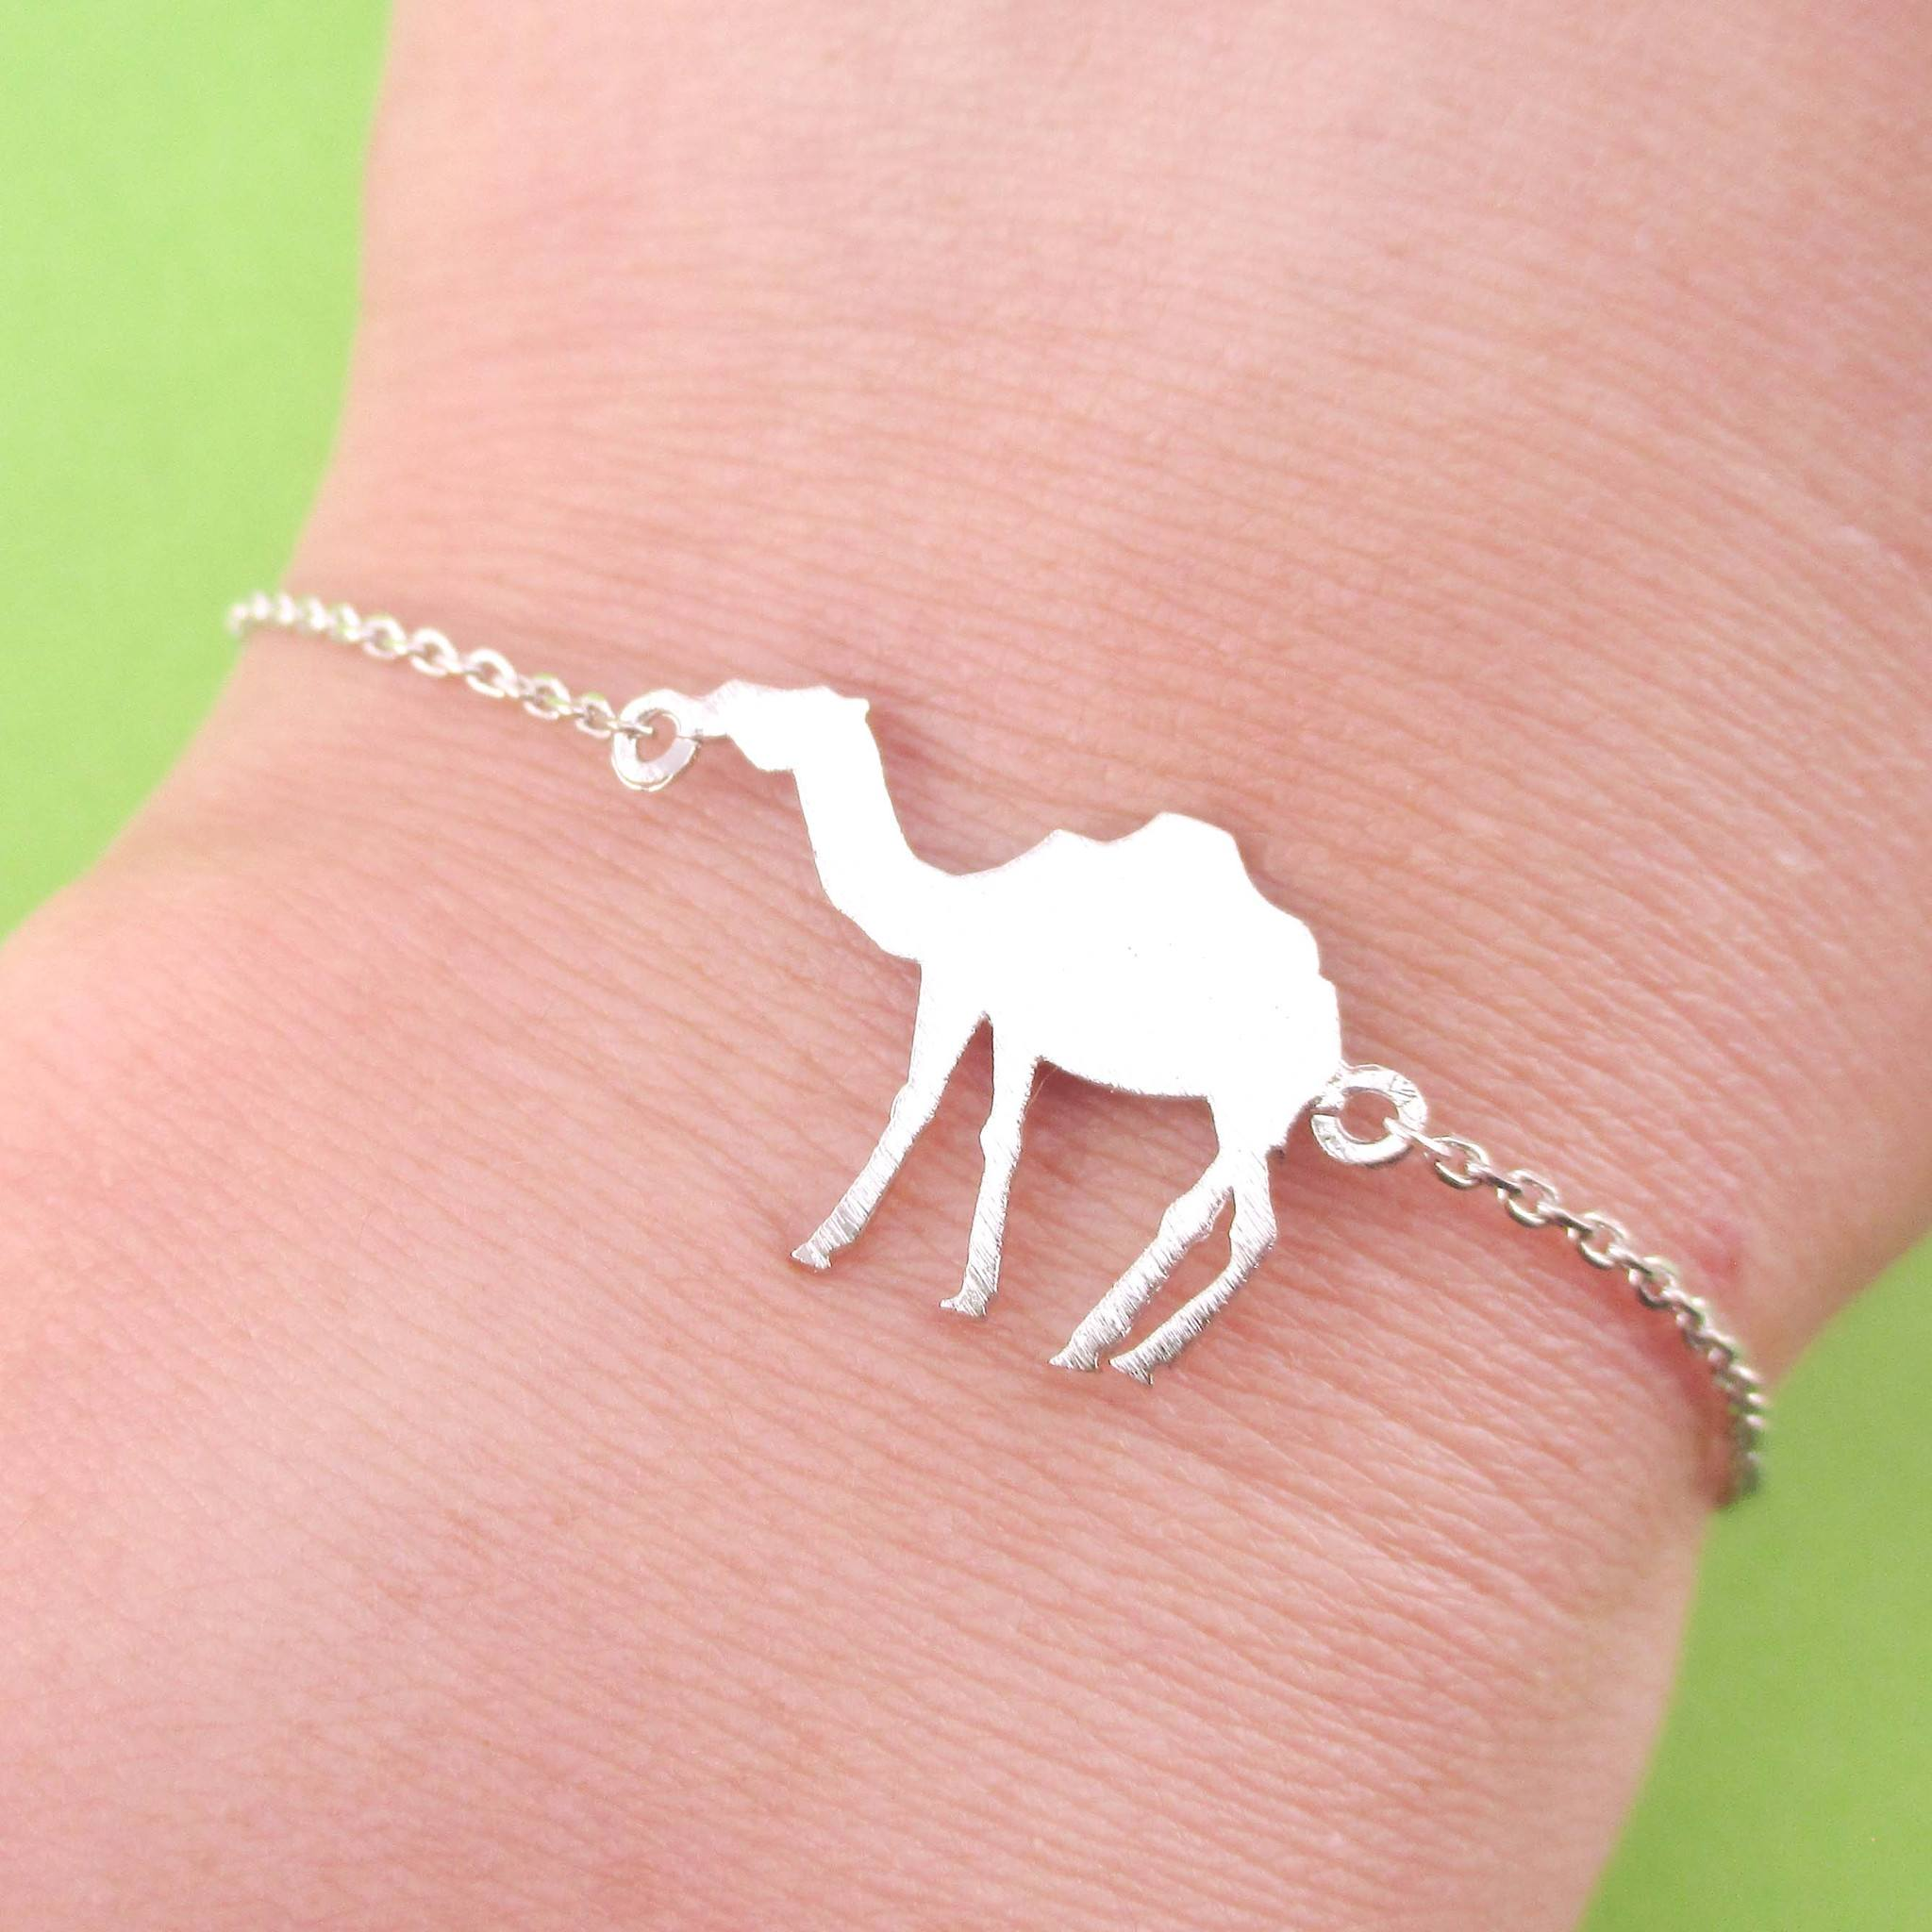 Camel Silhouette Shaped Charm Bracelet in Silver | Animal Jewelry